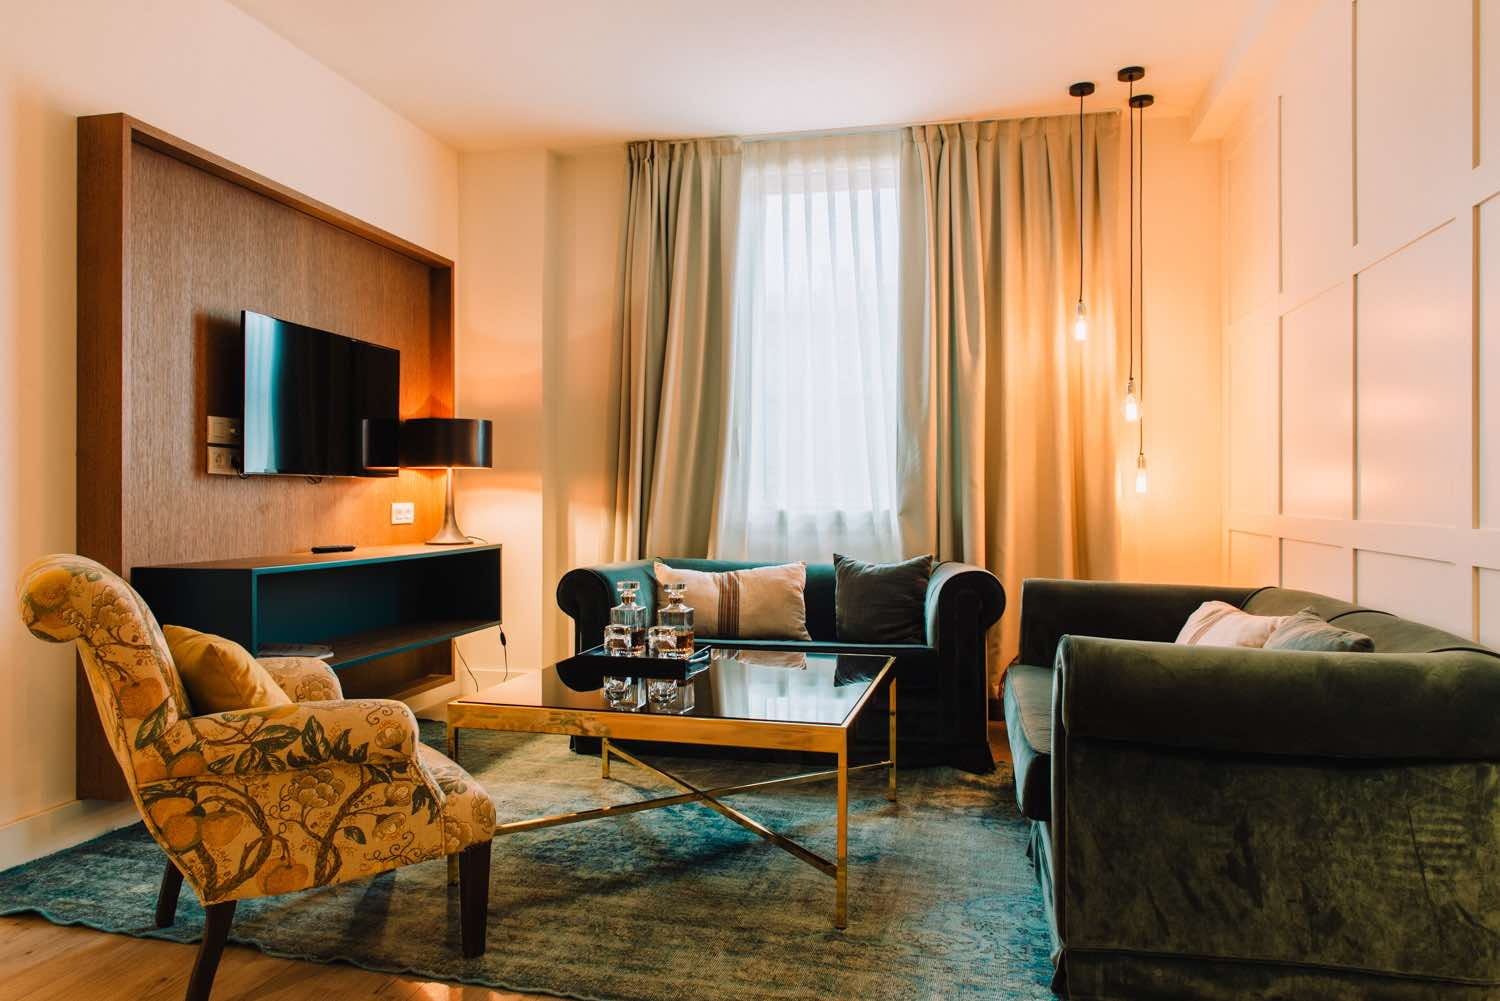 Gallery Hotel Barcelona suite with living area of luxury boutique hotels in Barcelona